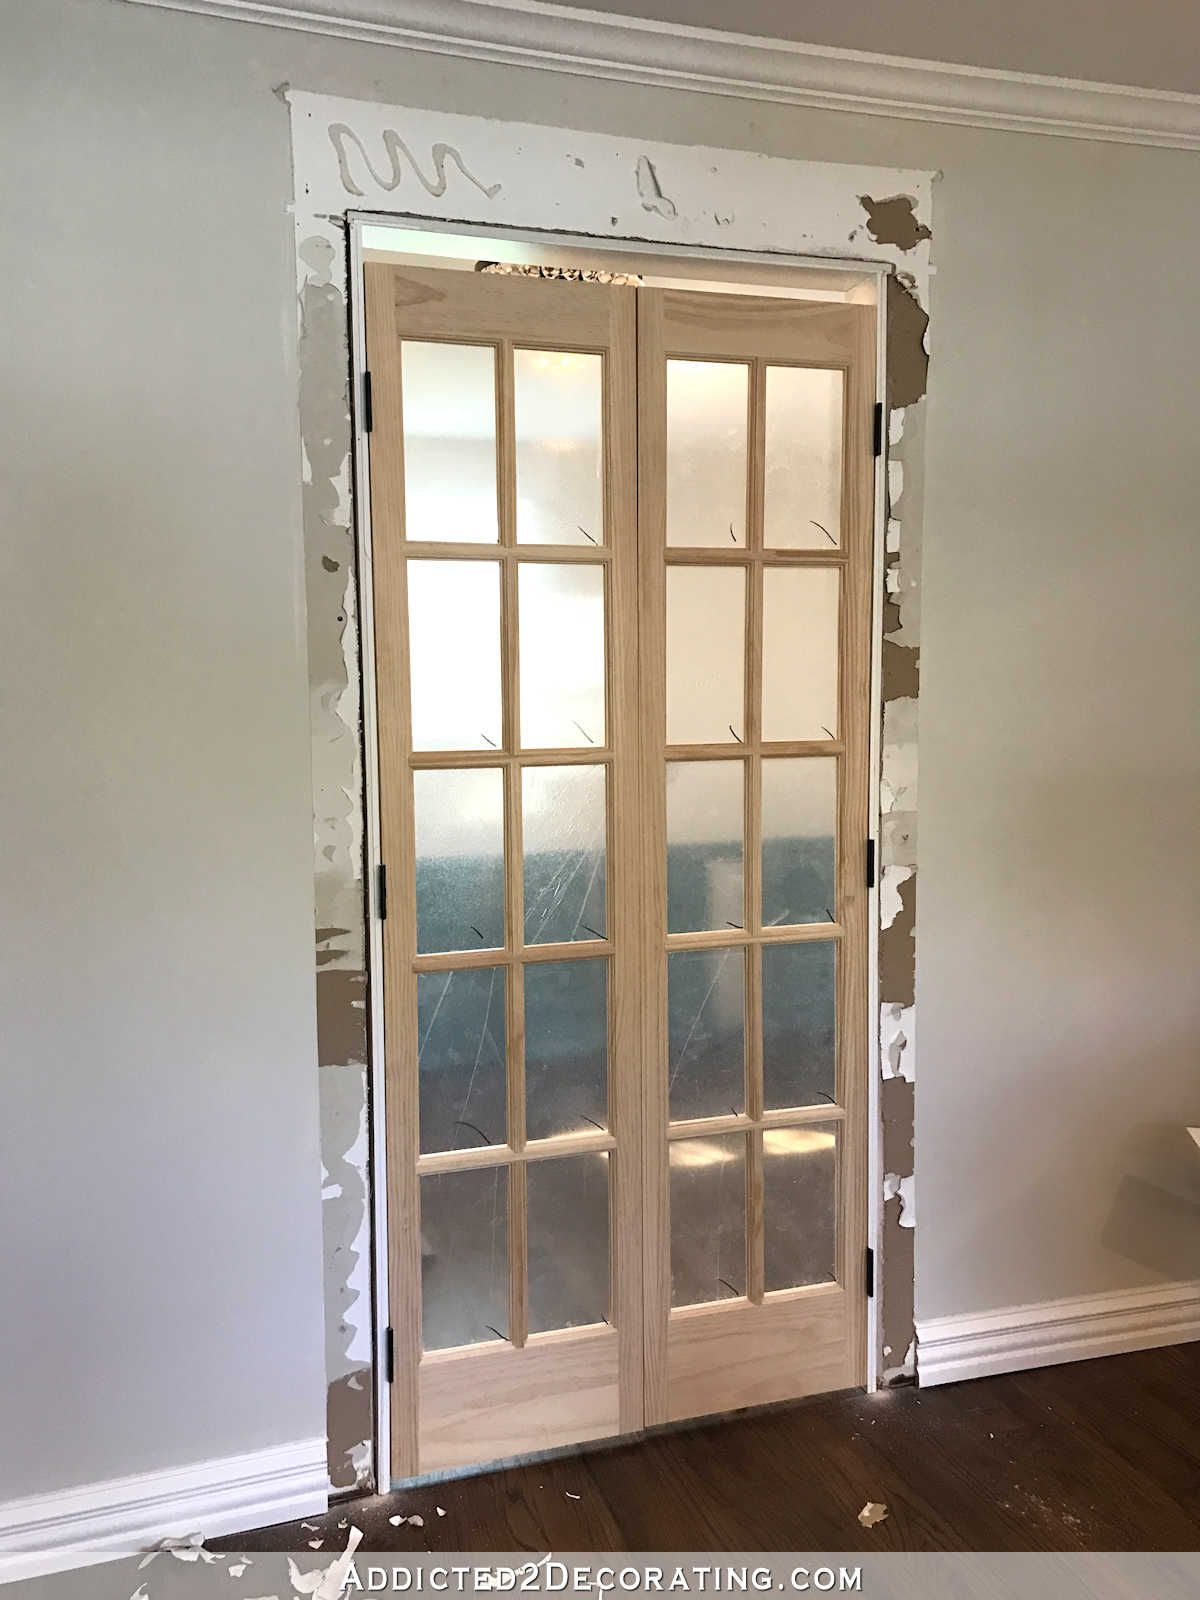 Pantry Doors Finished Bifold Closet Doors Installed As French Doors Addicted 2 Decorating Bifold Closet Doors Glass Doors Interior Custom Bifold Closet Doors